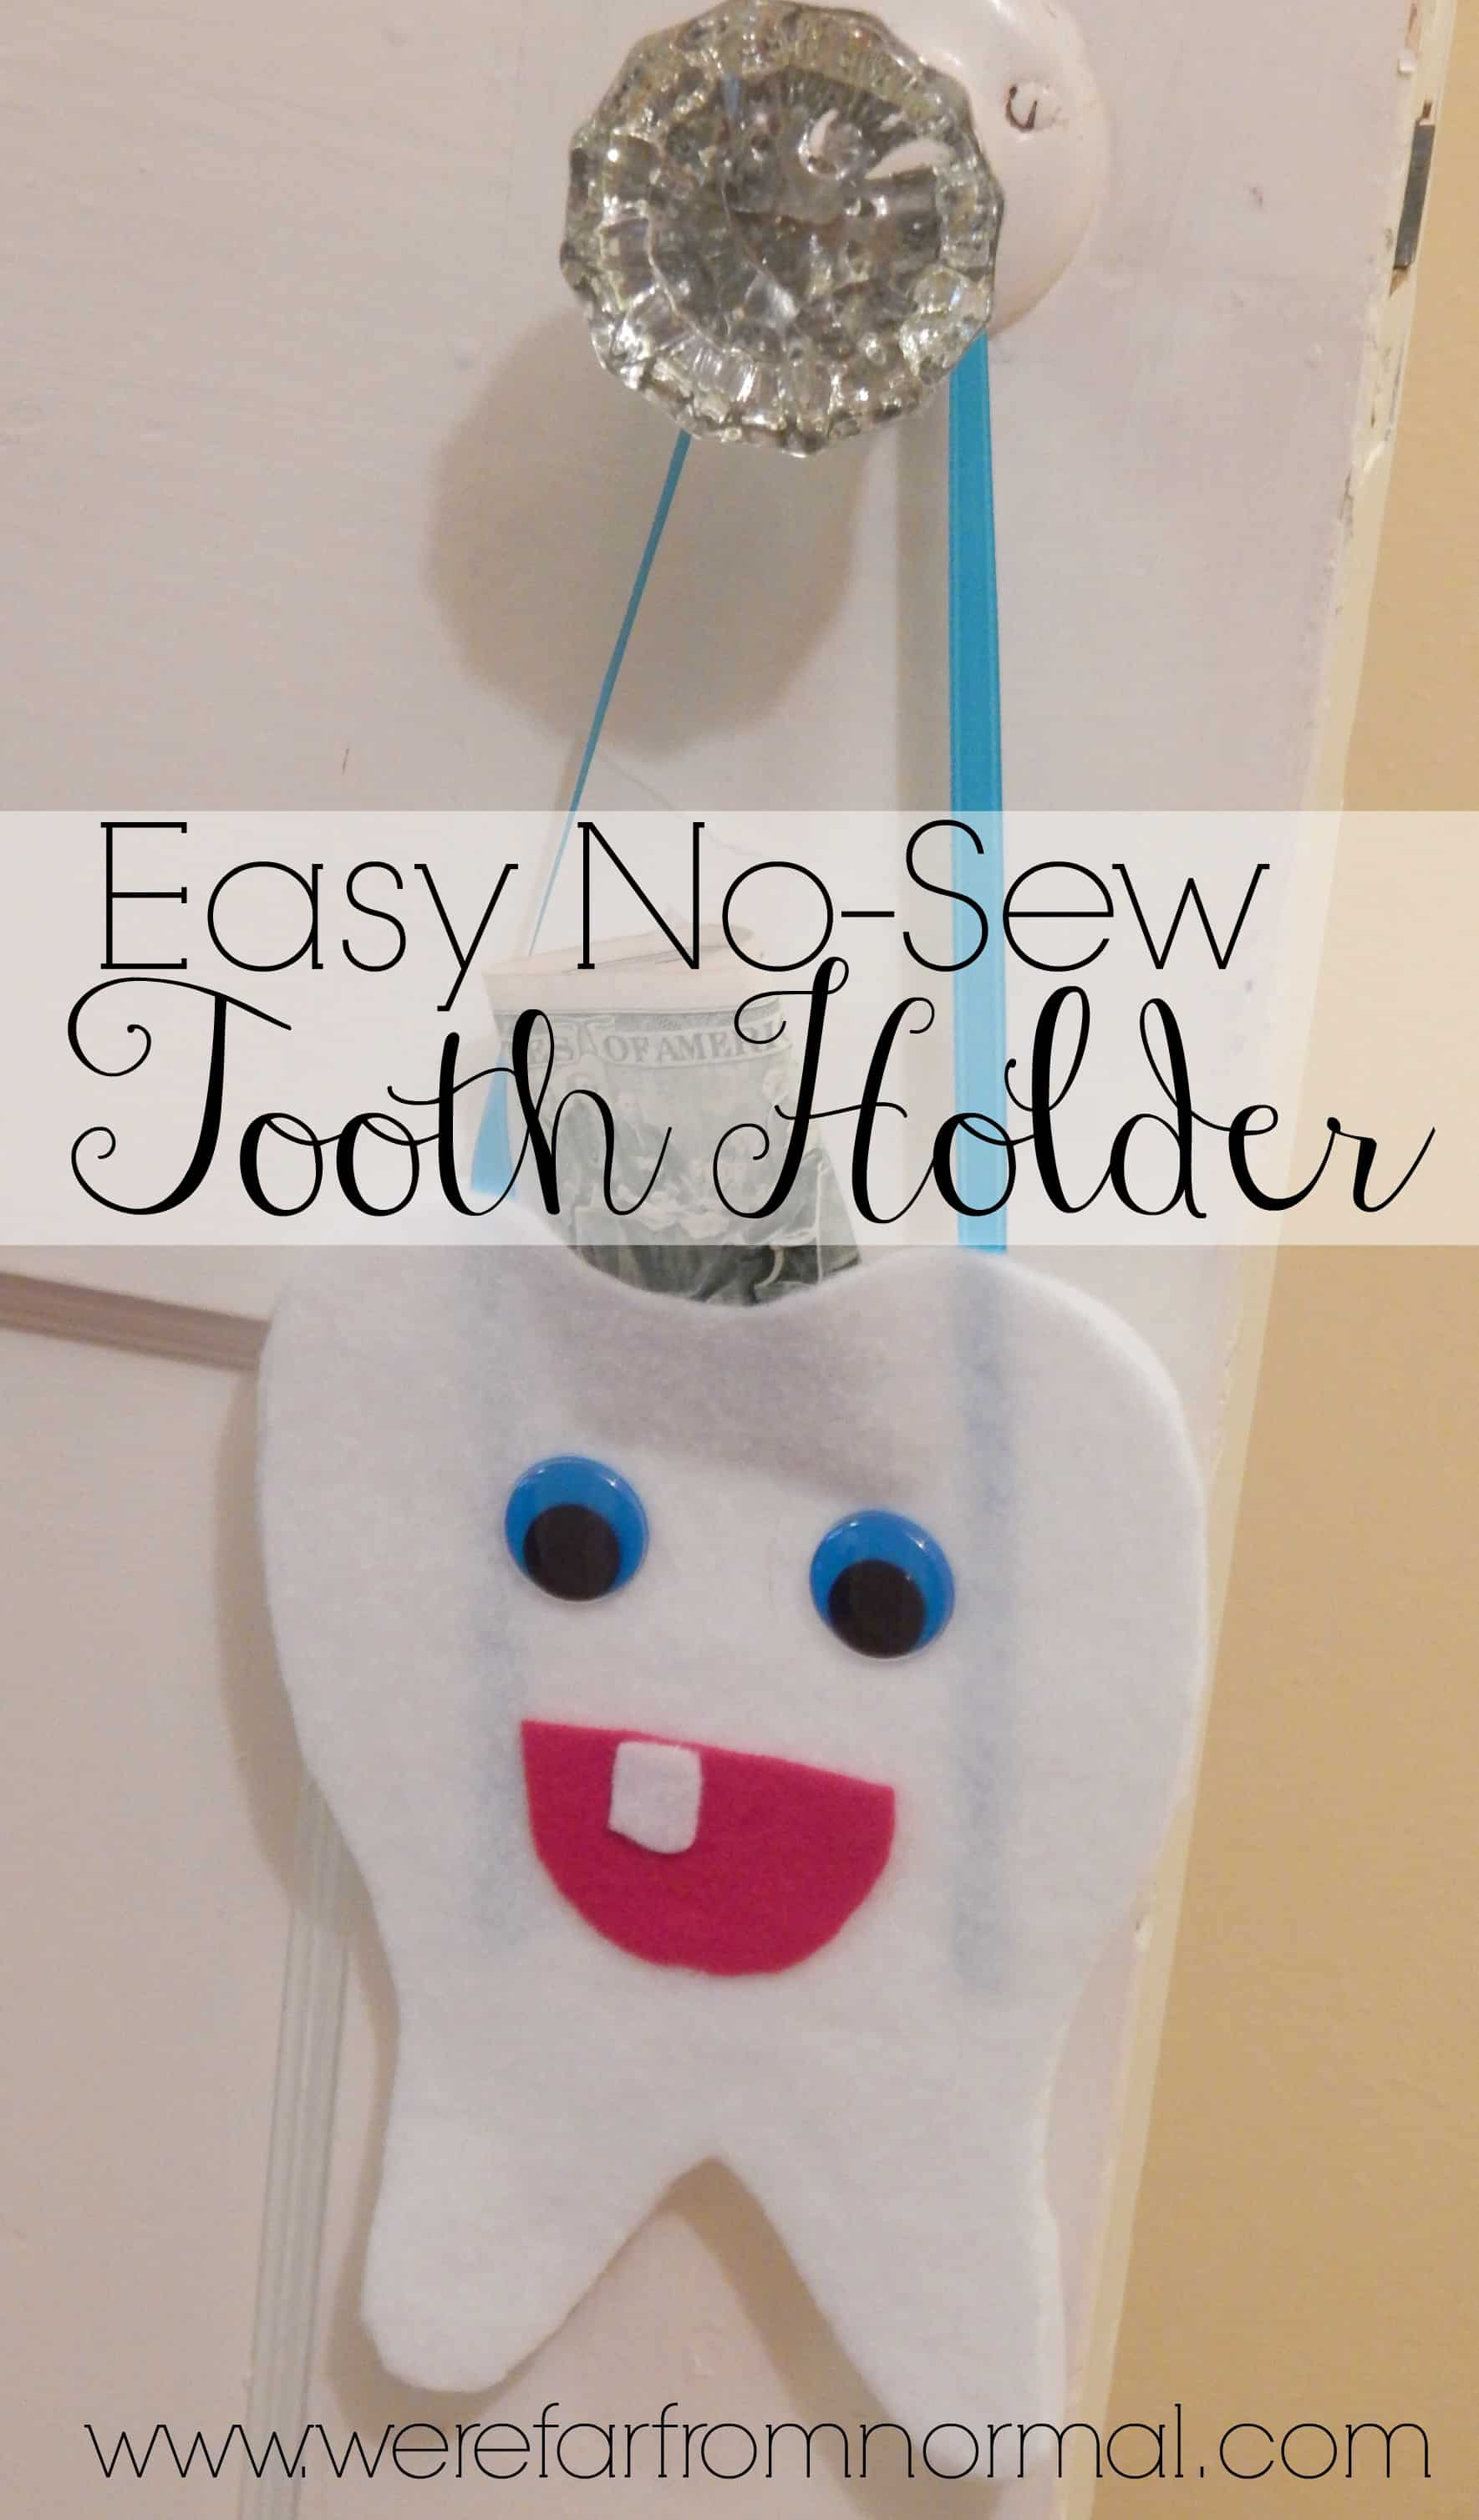 Easy No-Sew Tooth Holder {For the Tooth Fairy}